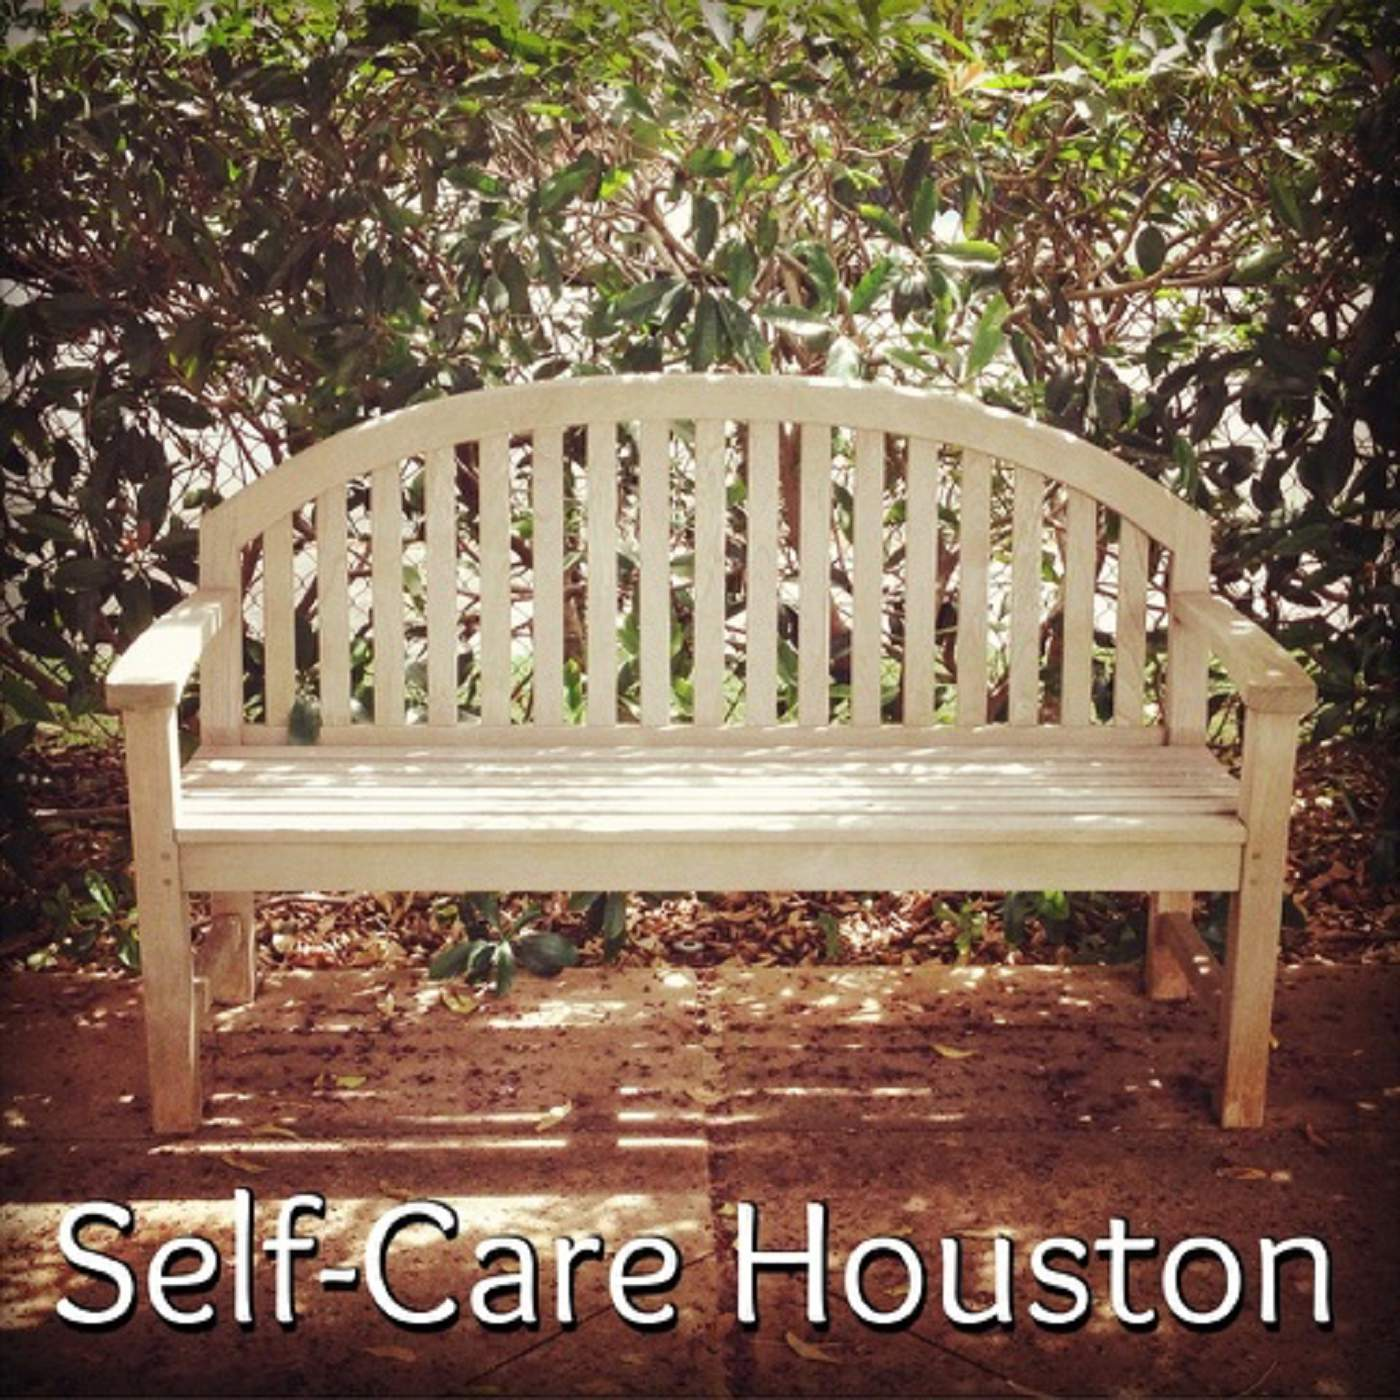 Self-Care Houston